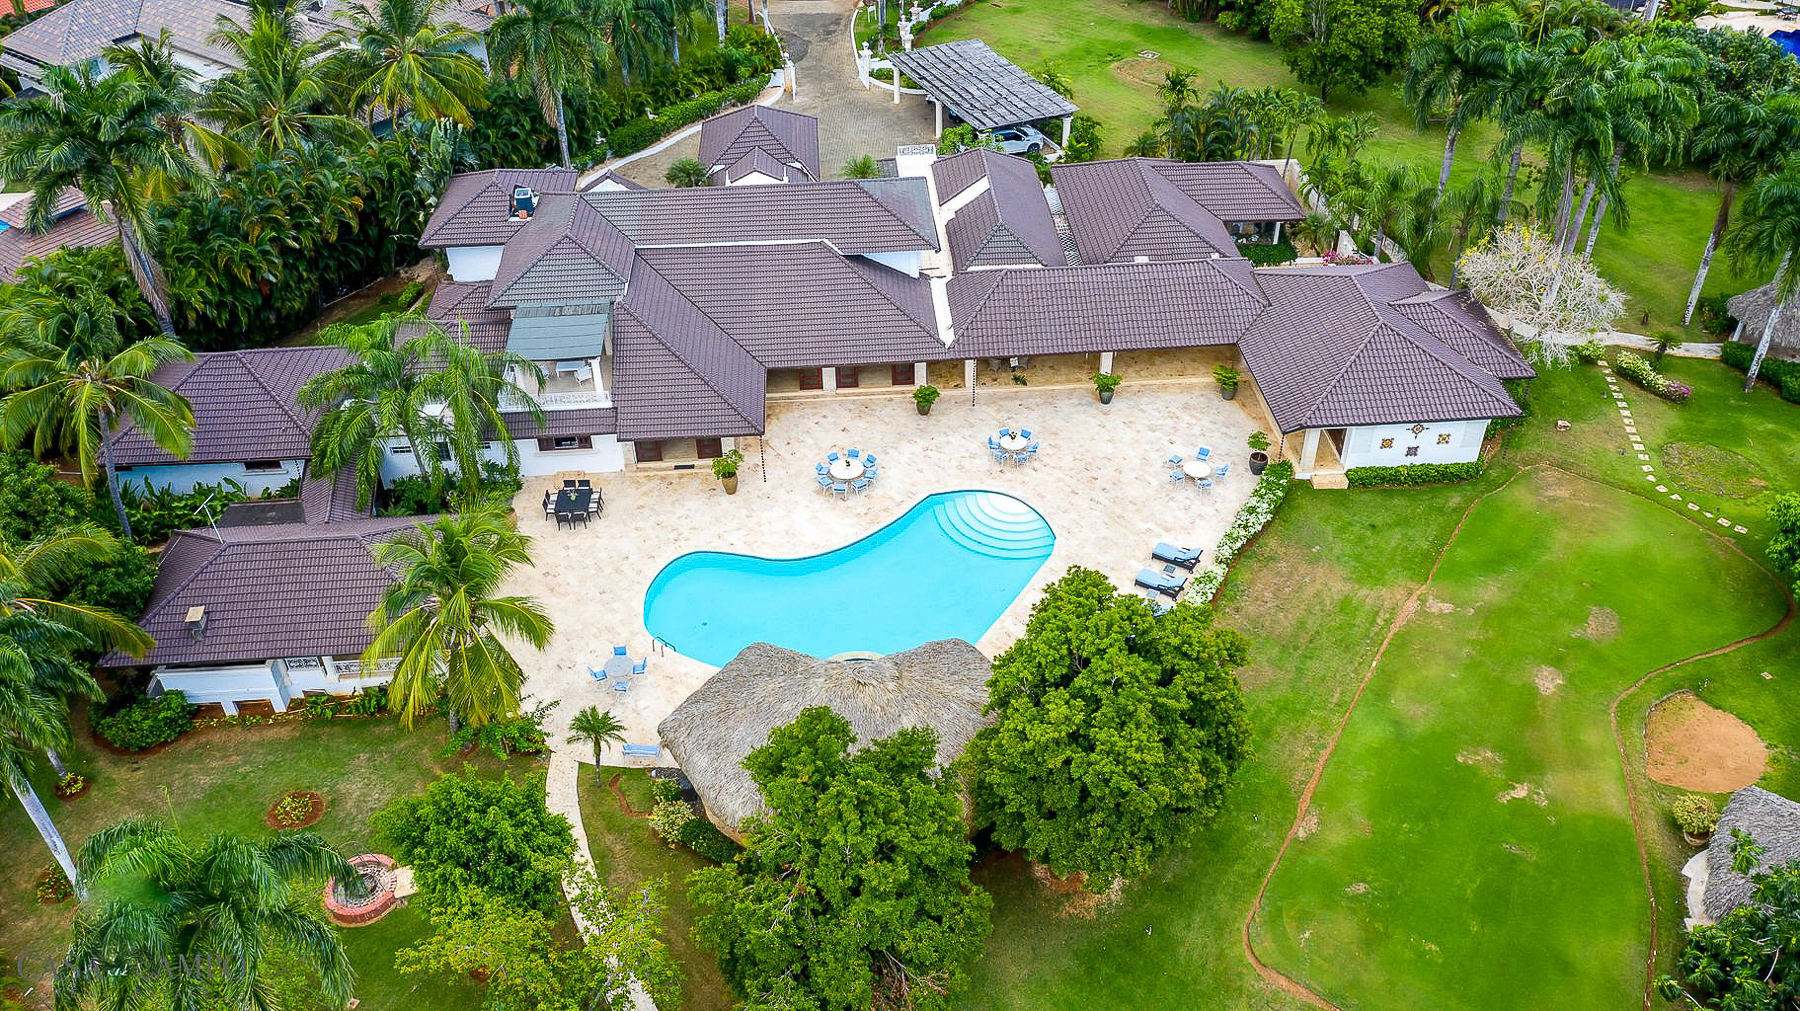 Expansive and Exquisite Large Family Villa with 7000m2 of Gardens